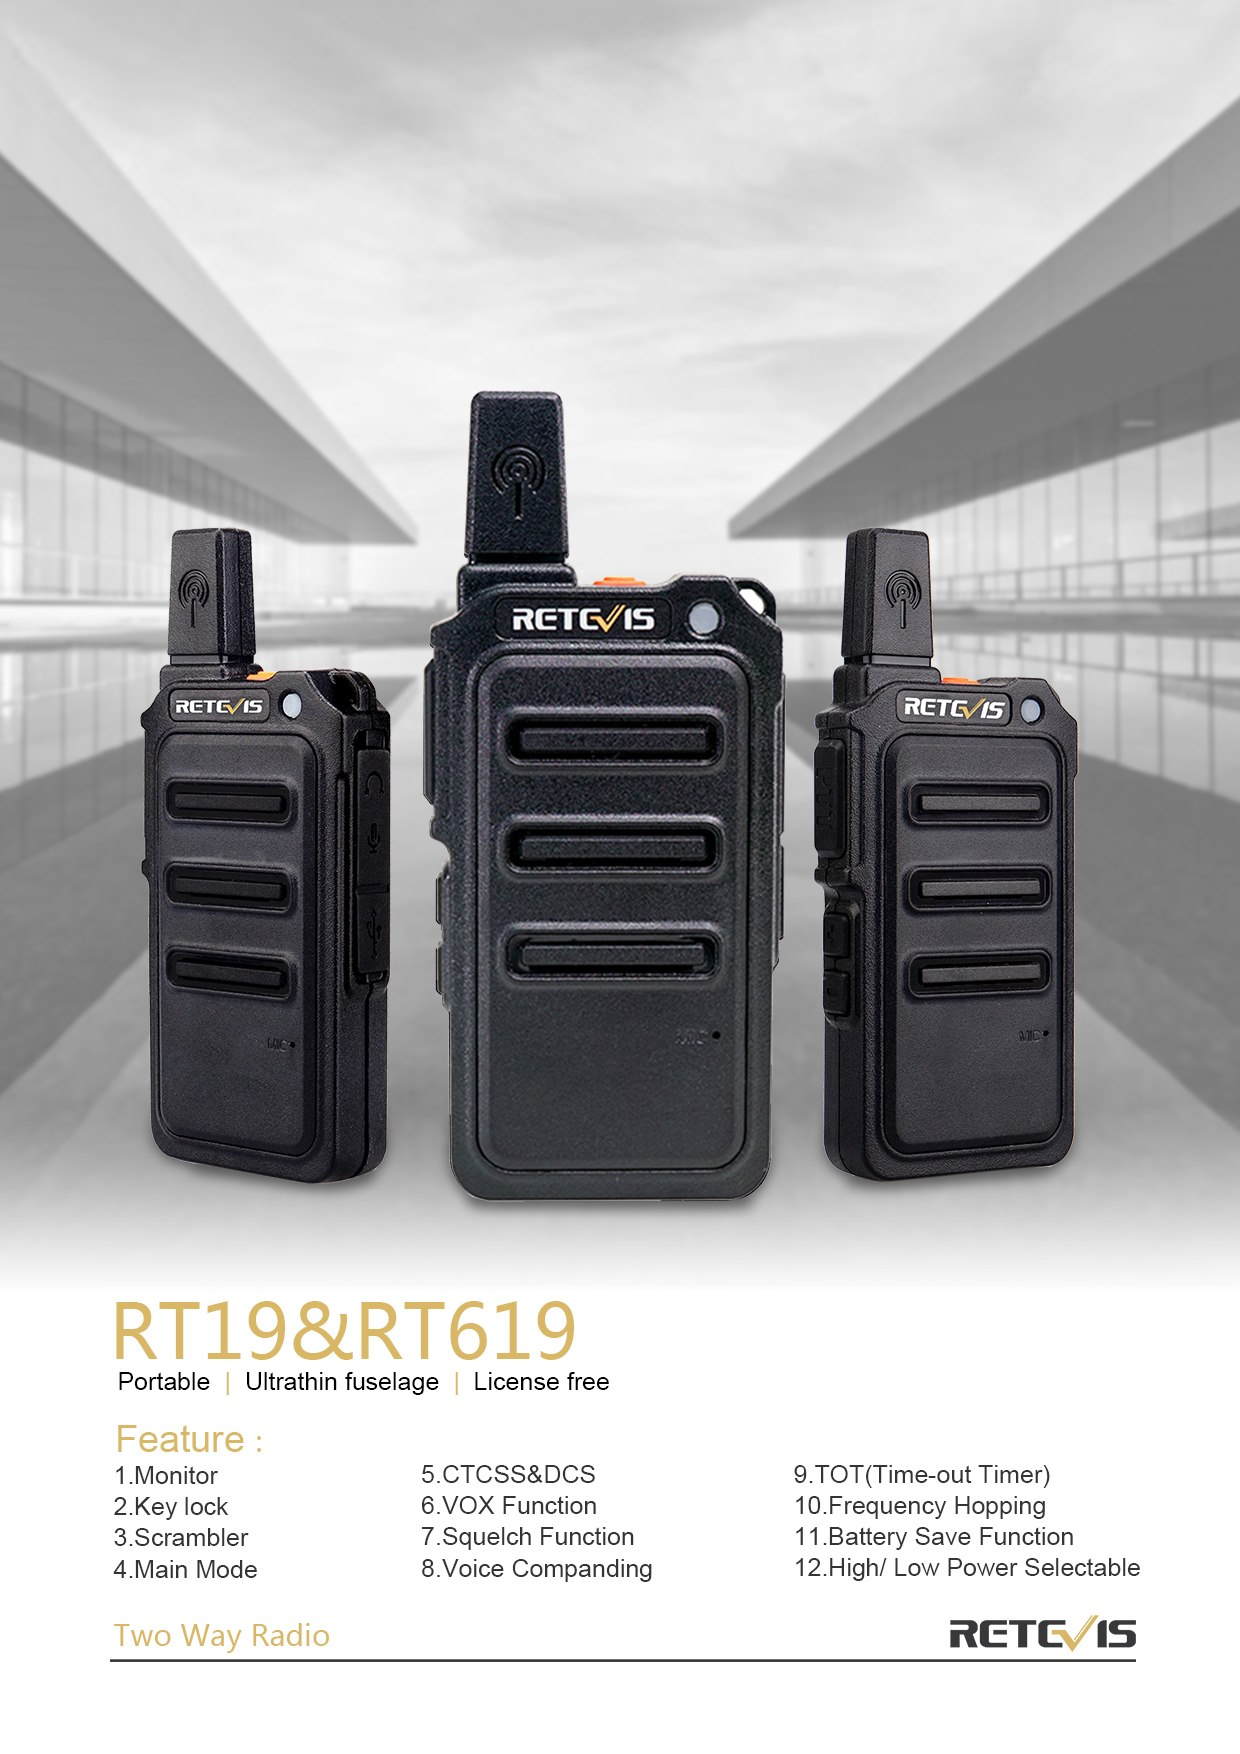 #Retevis Ultra-thin License-free Portable radio RT19(US version)/RT619(EU version).